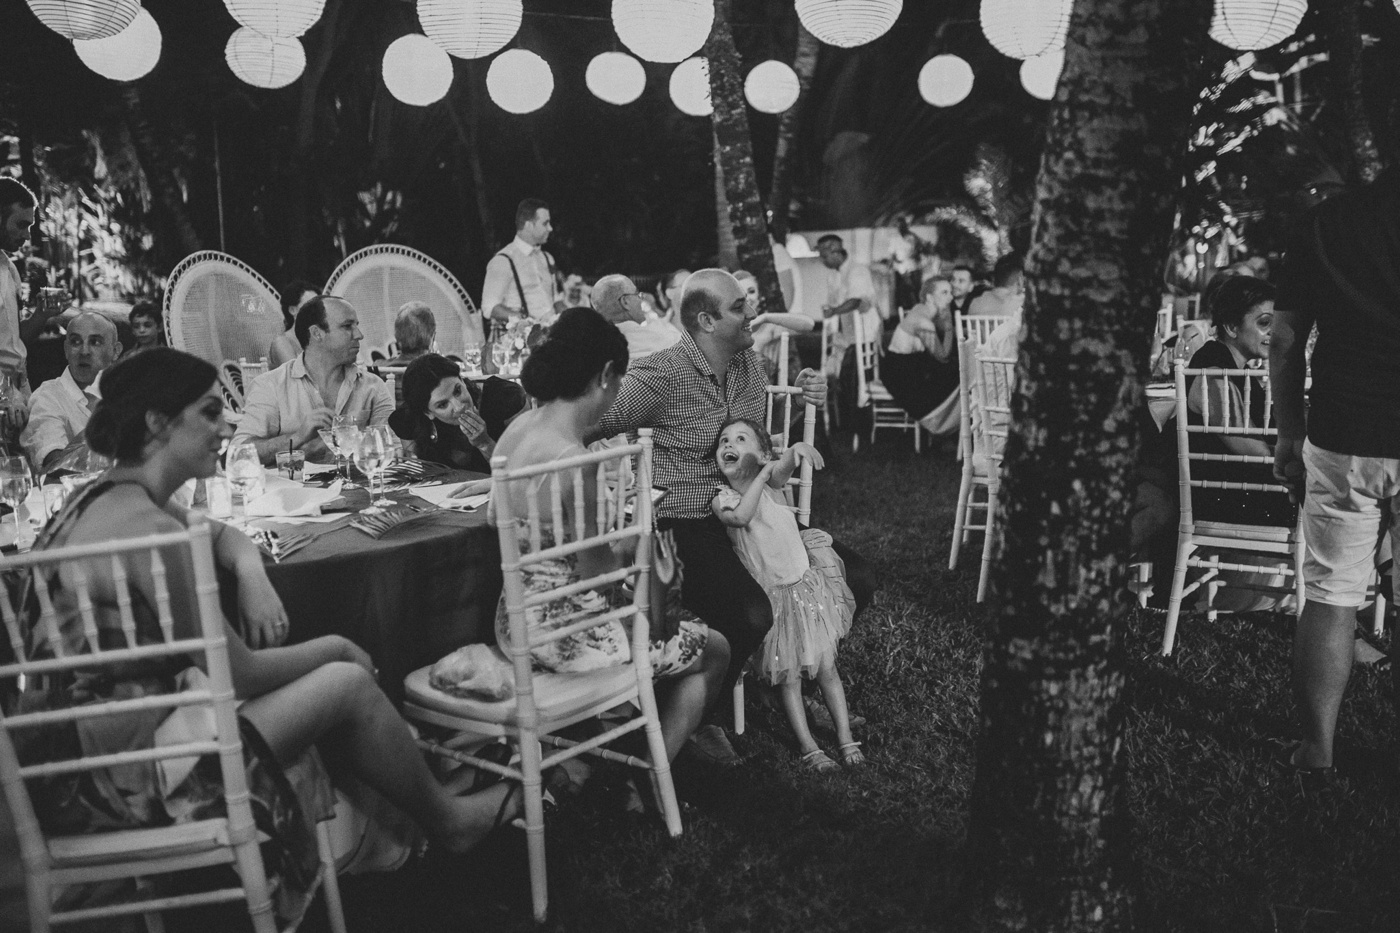 Deb-Ibs_Bali-Tropical-Relaxed-Wedding_Destination-Wedding-Photography_Melbourne-Wedding-Photographer_122